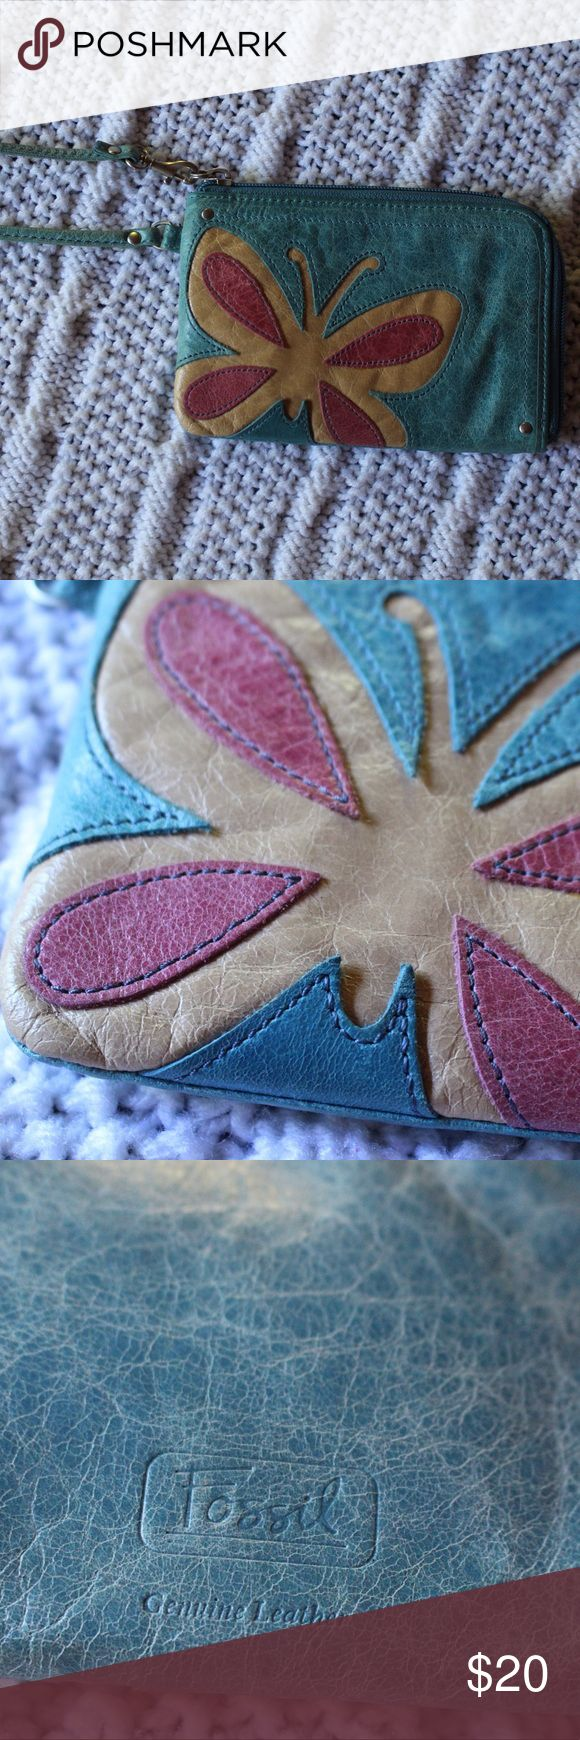 Fossil butterfly wallet wristlet Great for summer day vibes - great condition and hardly used! - fossil genuine leather - a perfect inside compartment with card slots 👍🏼 Fossil Bags Clutches & Wristlets